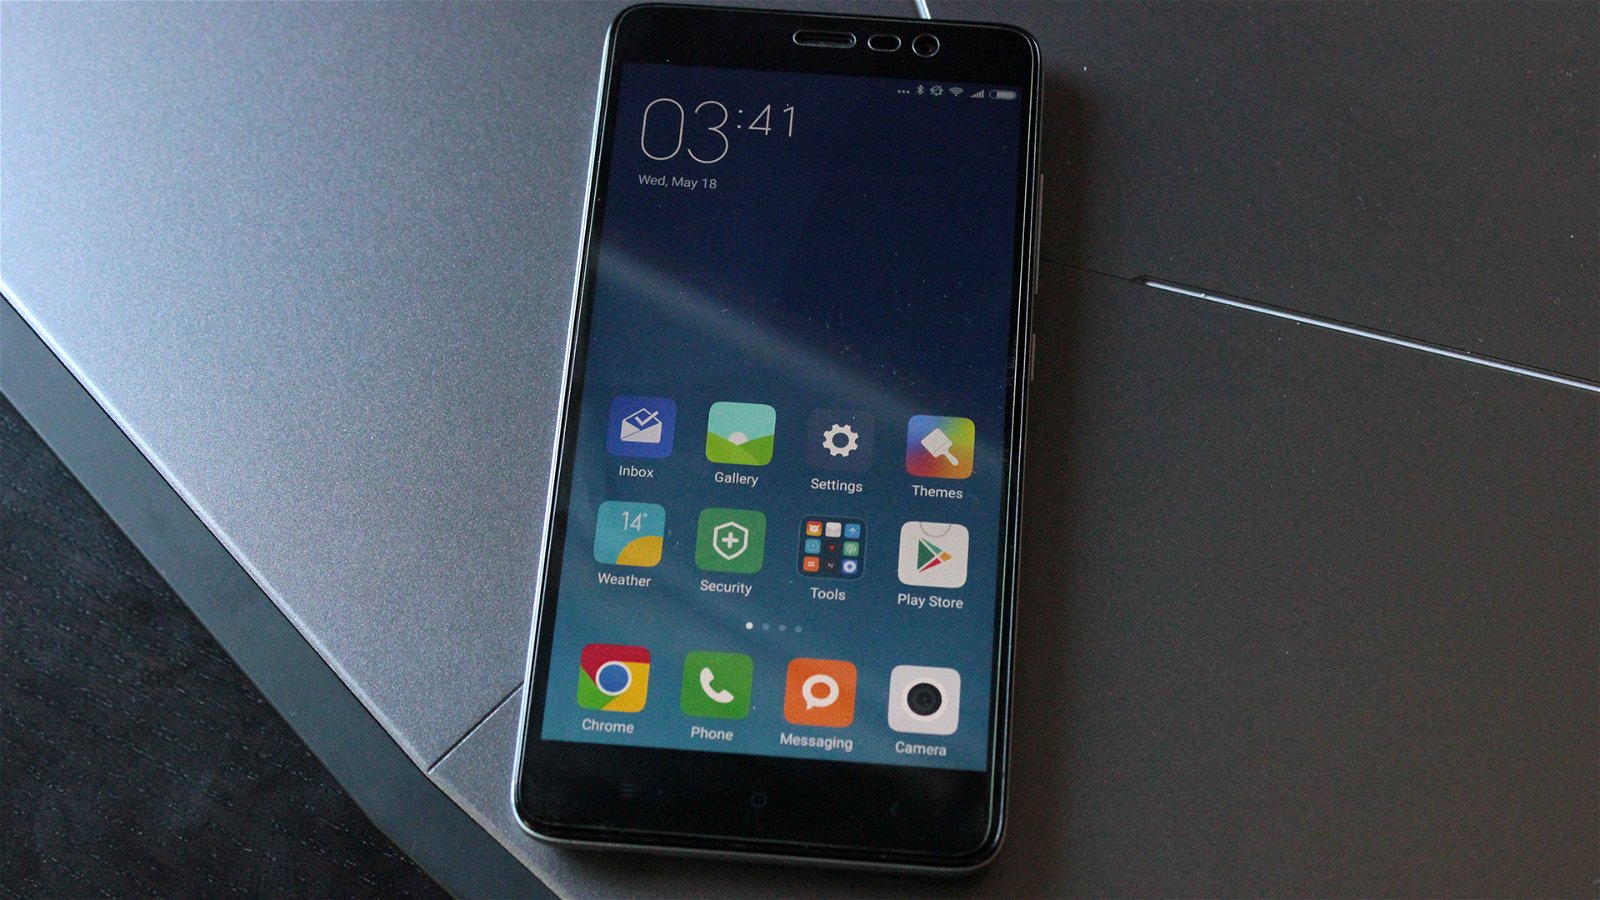 Smartphone Xiaomi Redmi Note 3 Pro: reviews of the owners, specifications and features 94